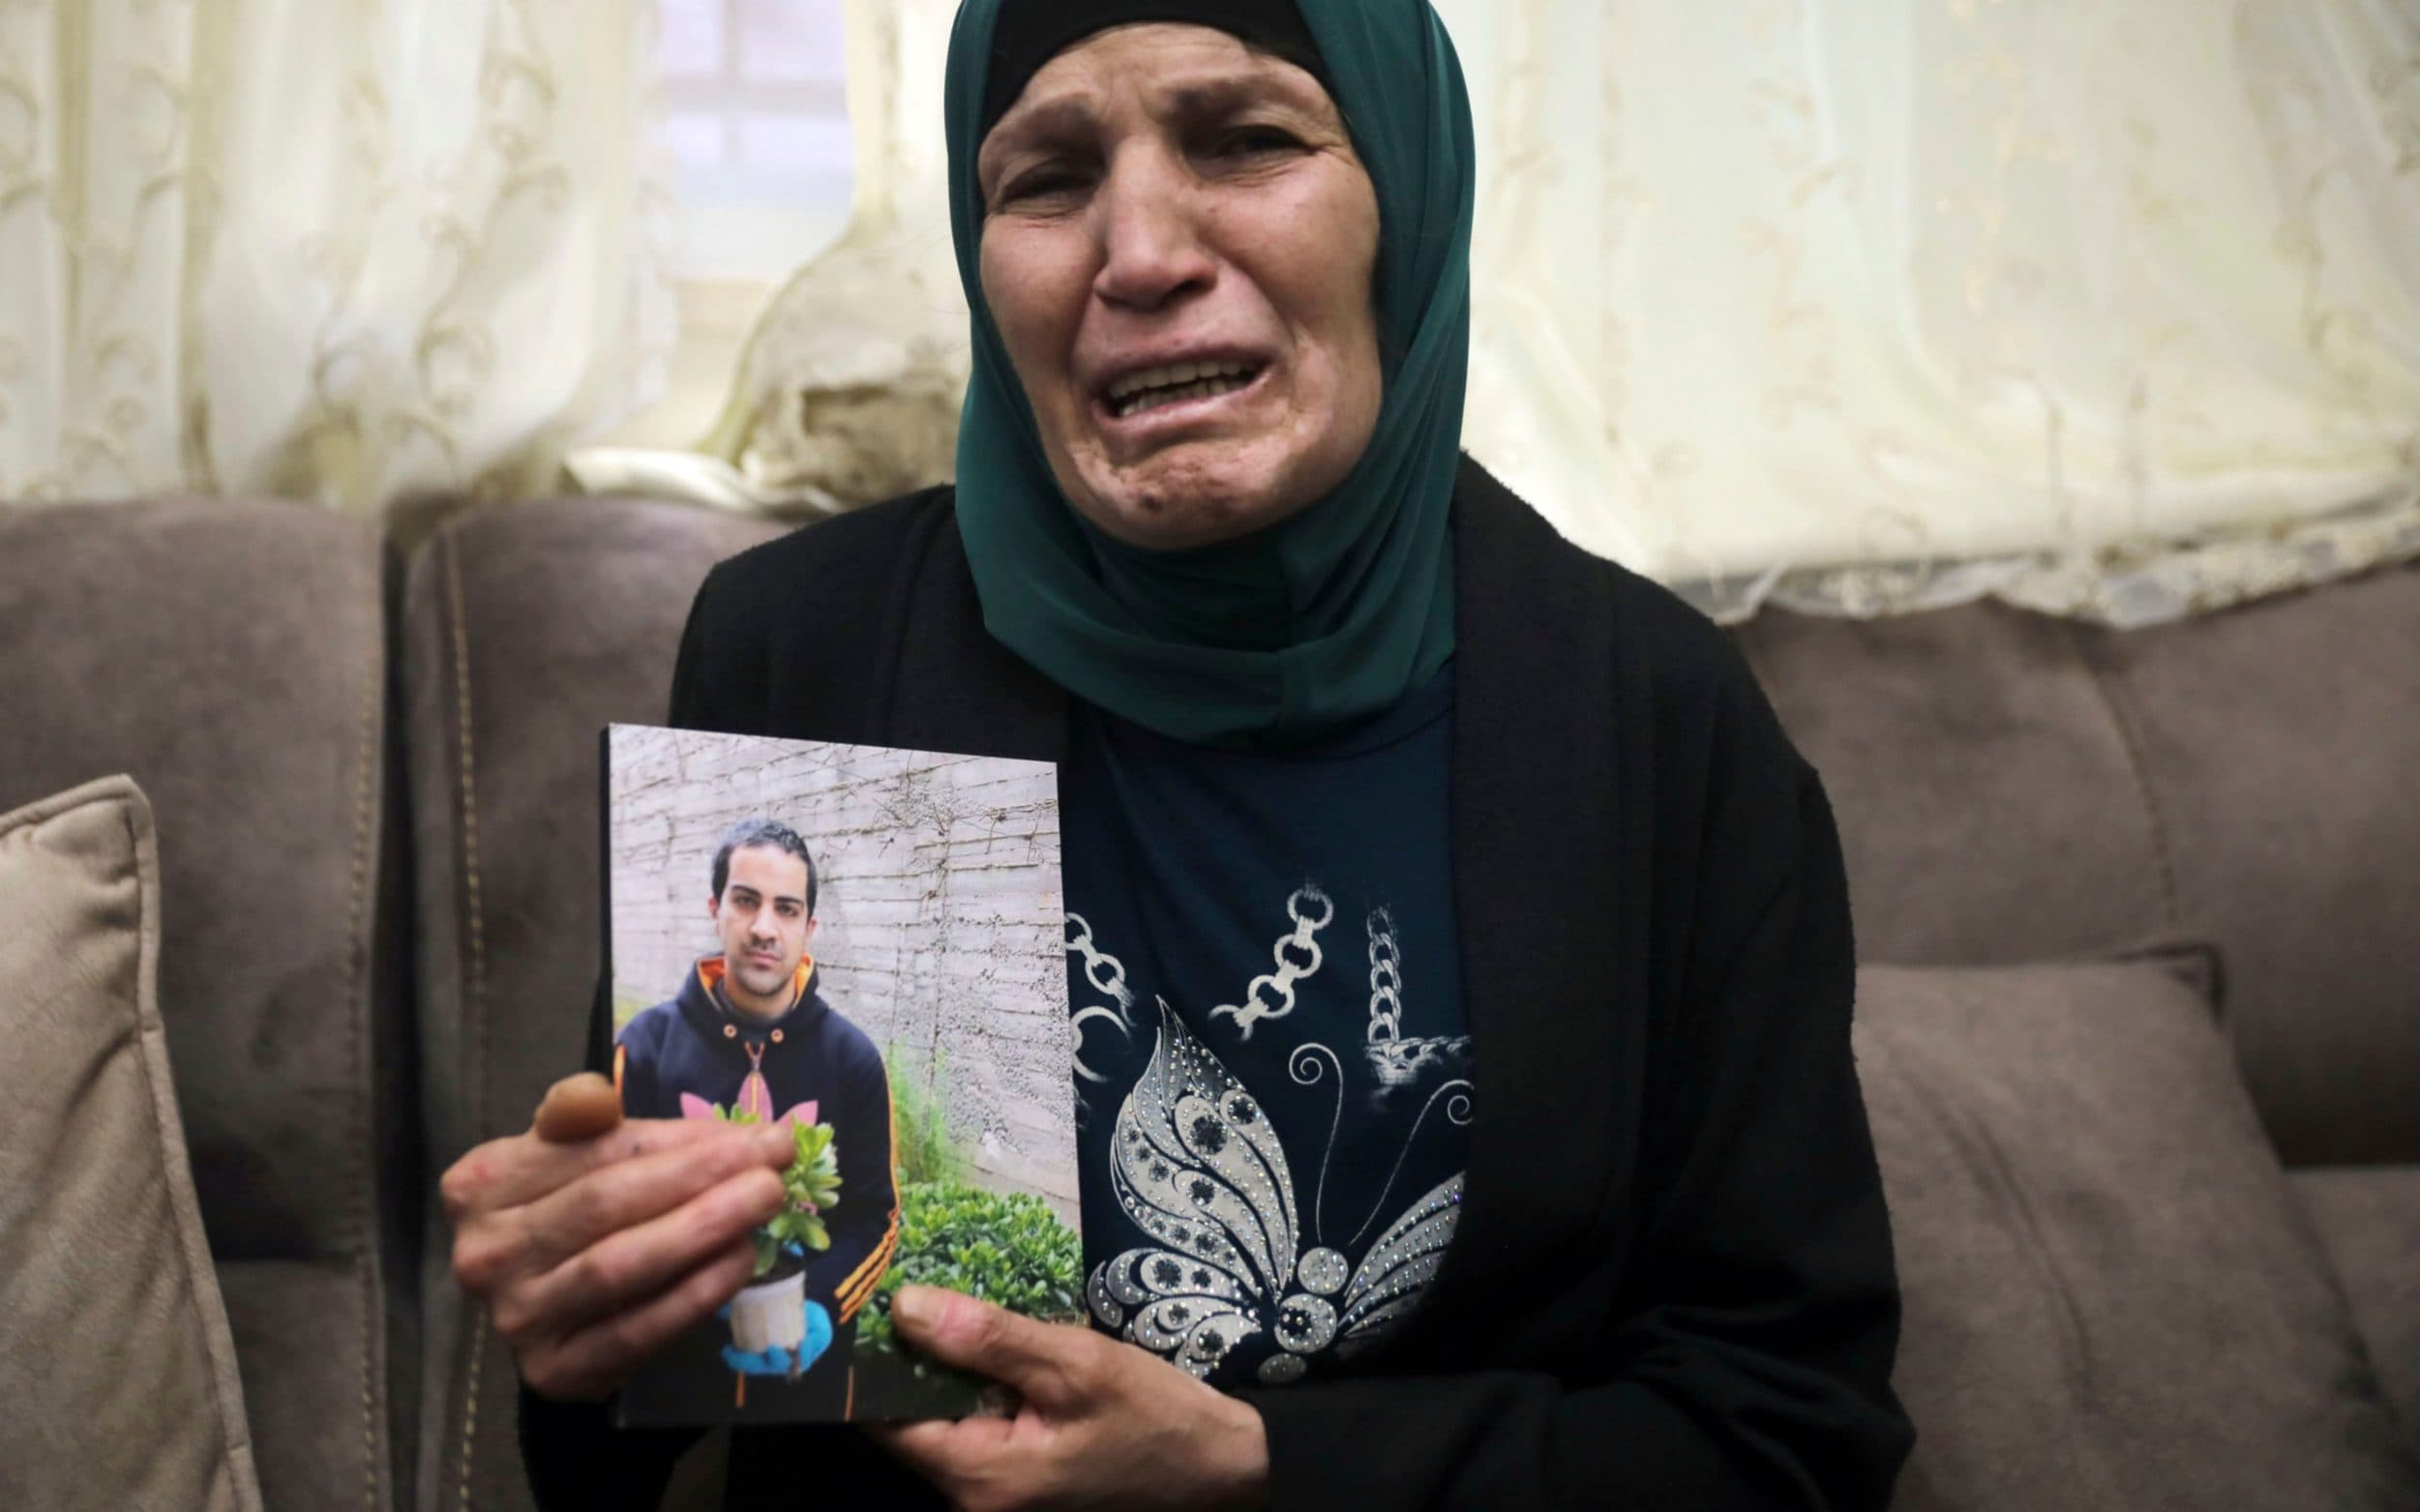 Israeli forces shot and killed an autistic Palestinian man in Jerusalem as he walked to special needs school